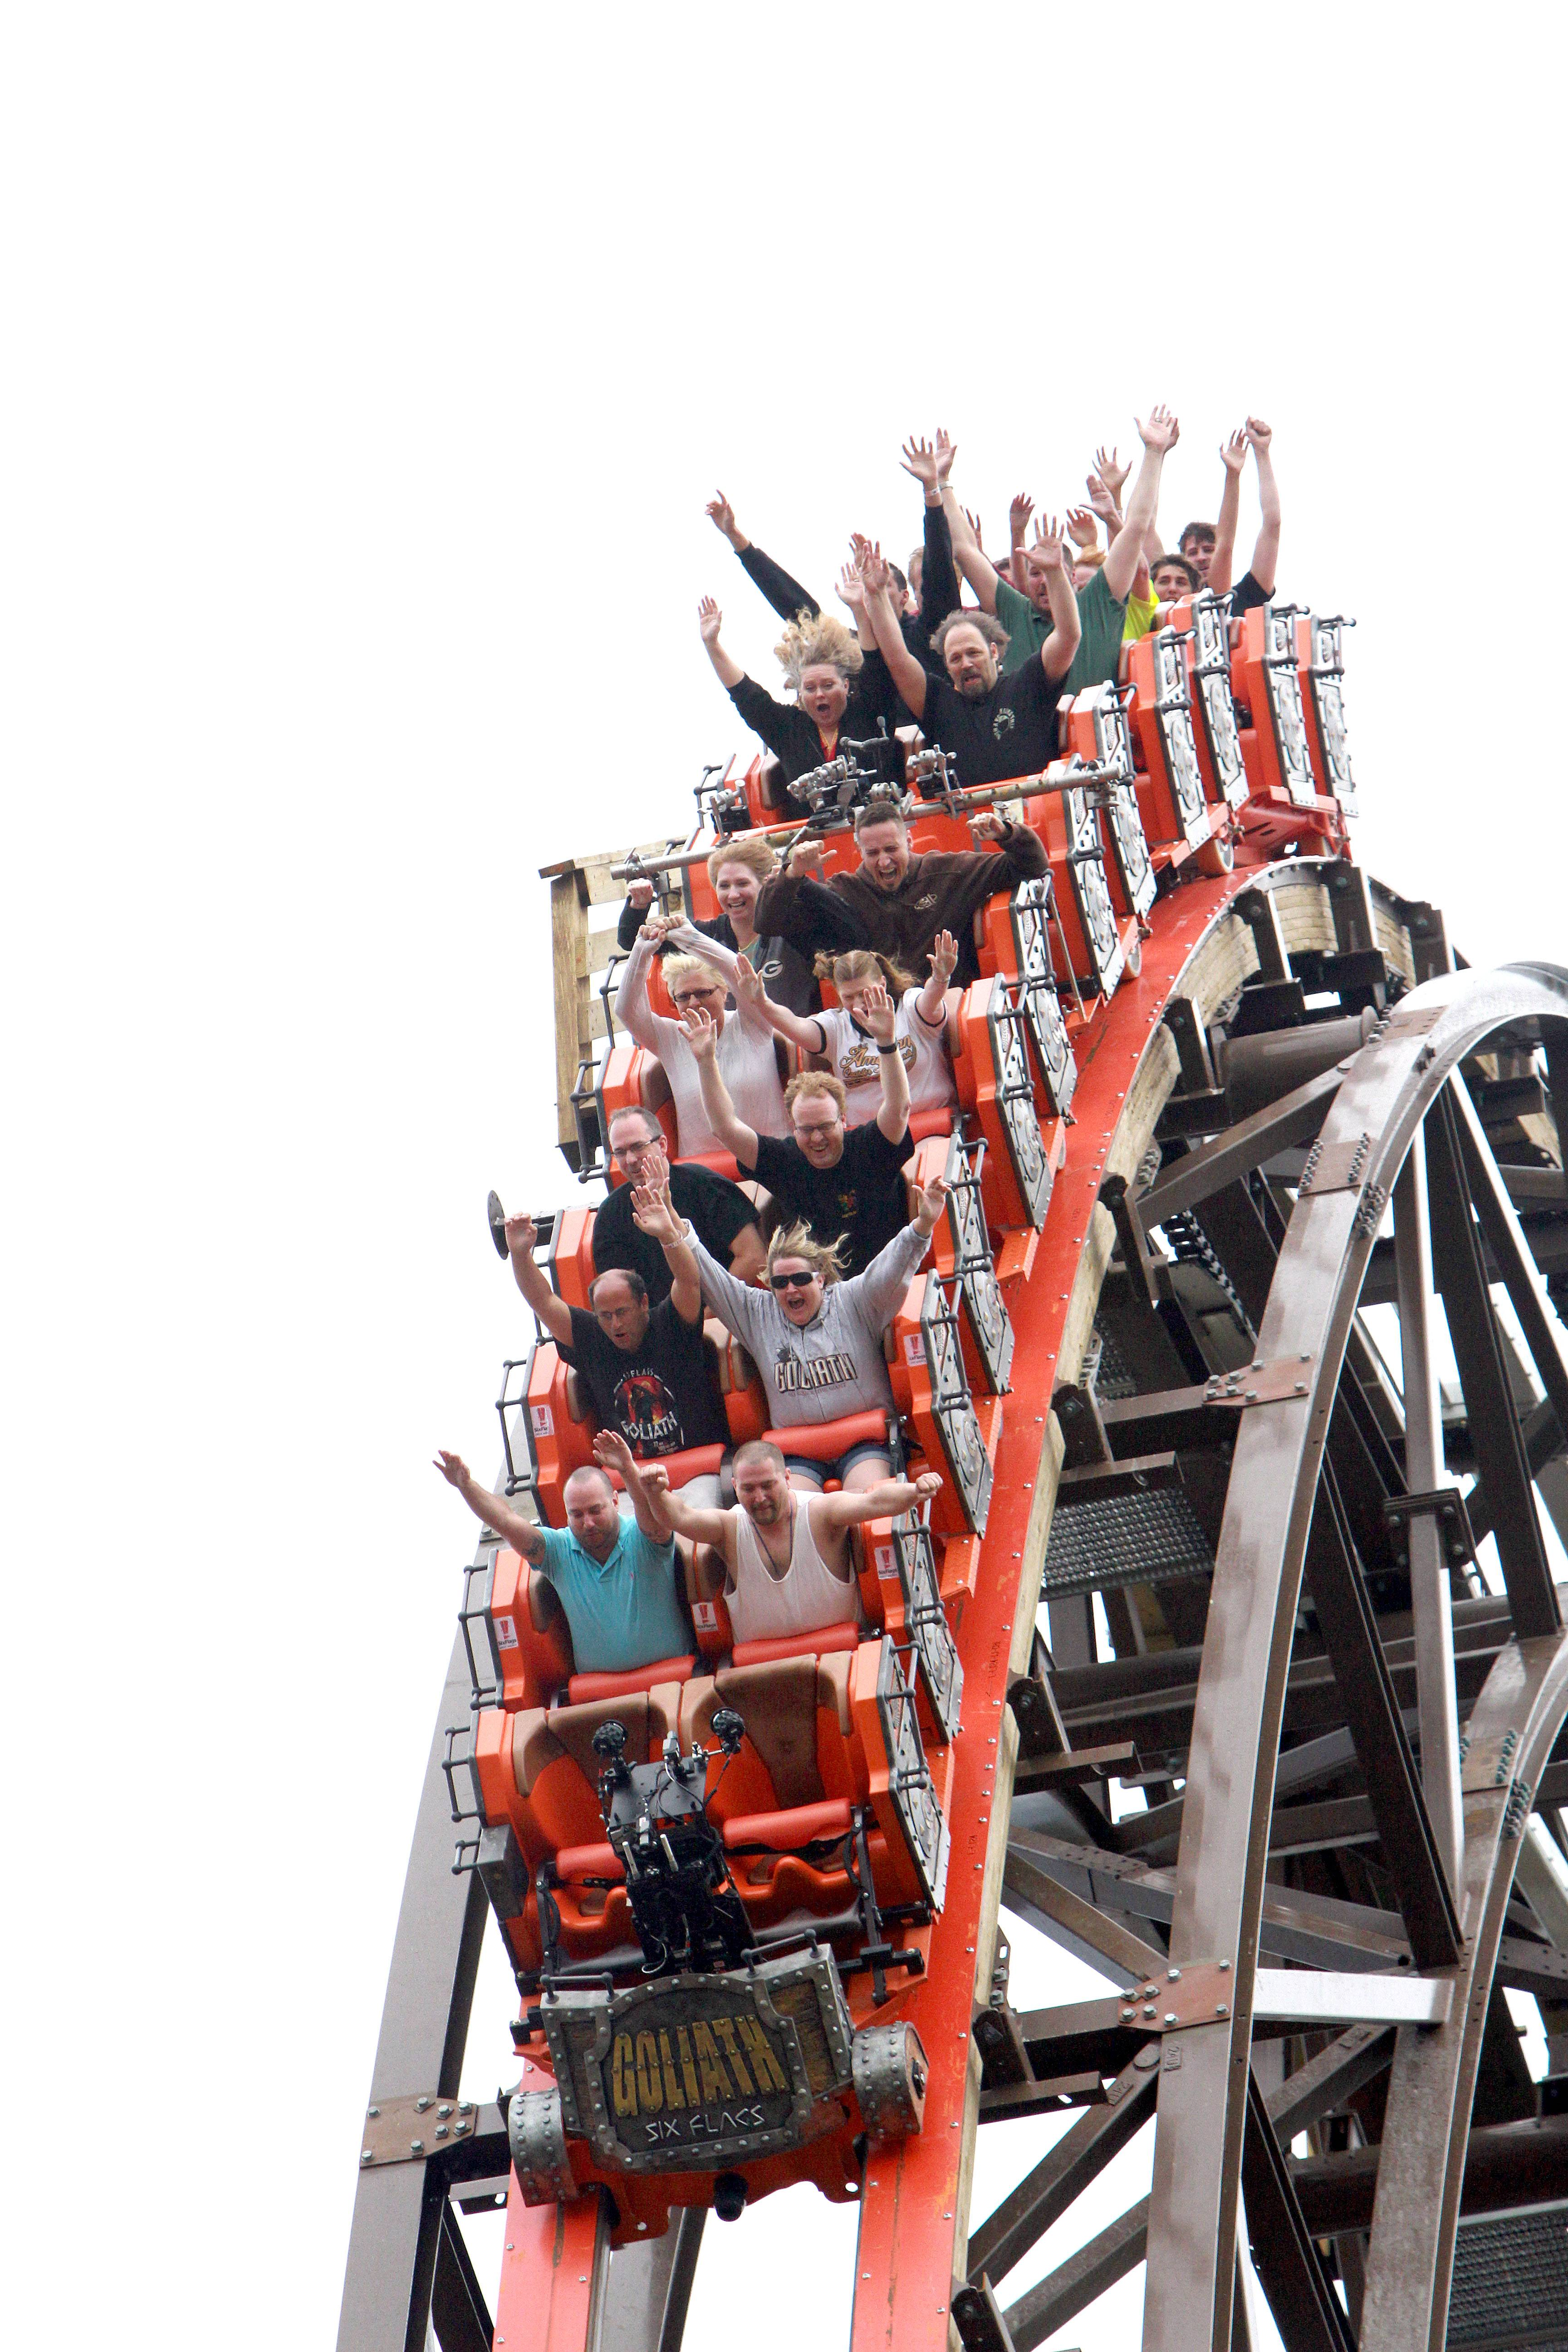 Riders brave the first drop for Goliath during a special preview Wednesday at Six Flags Great America in Gurnee. The ride opens to the public Thursday.